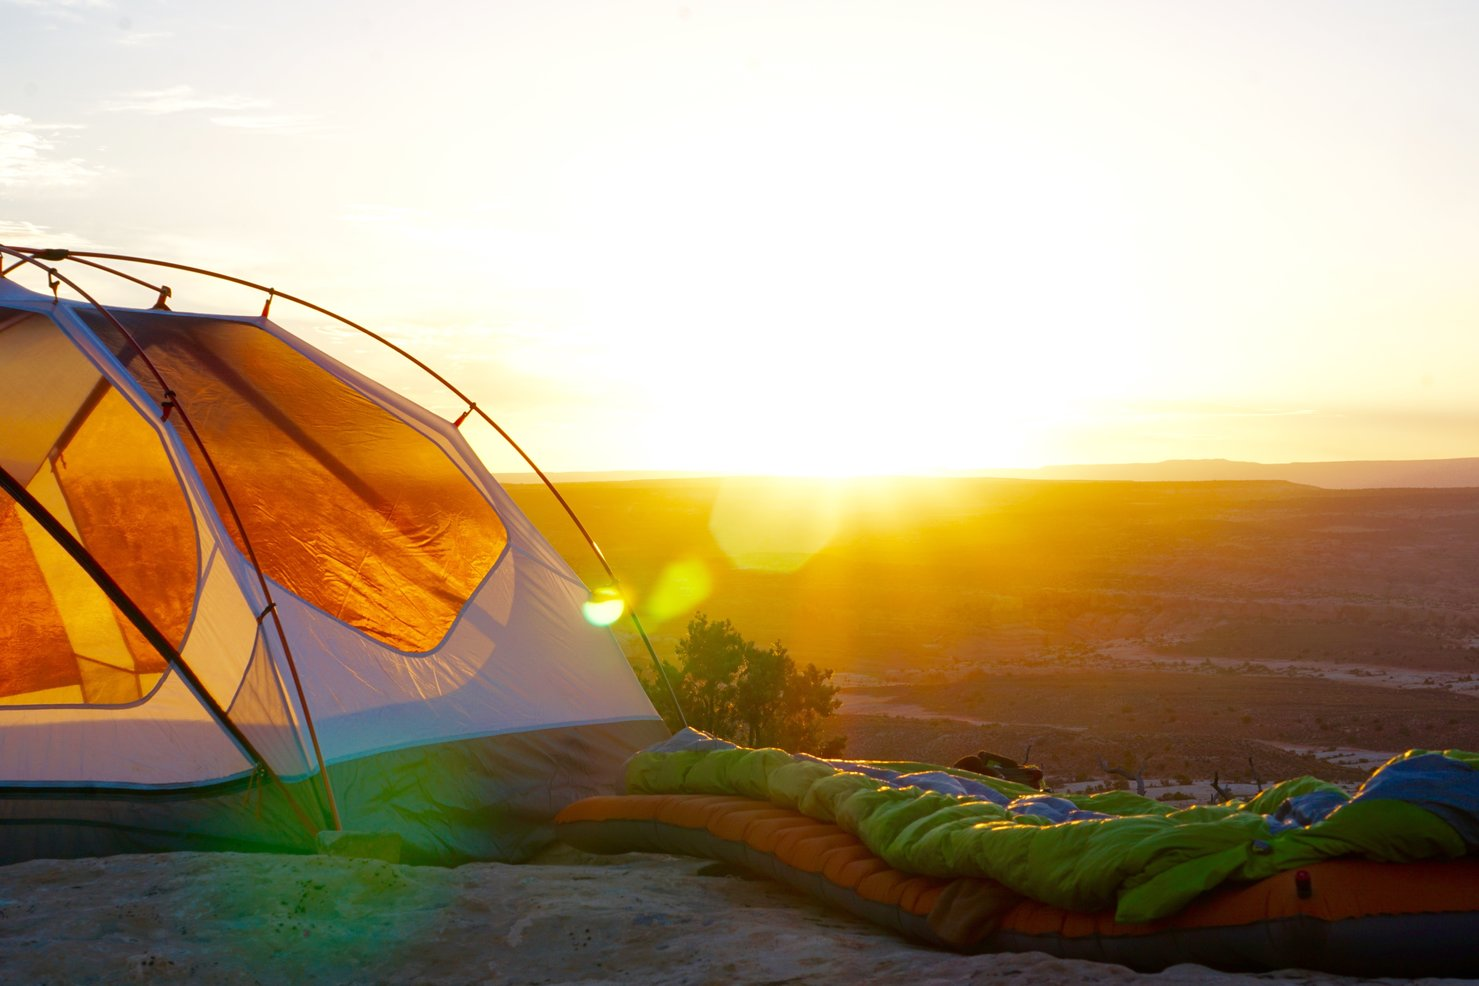 CAMPING TIPS FOR THE SUMMER